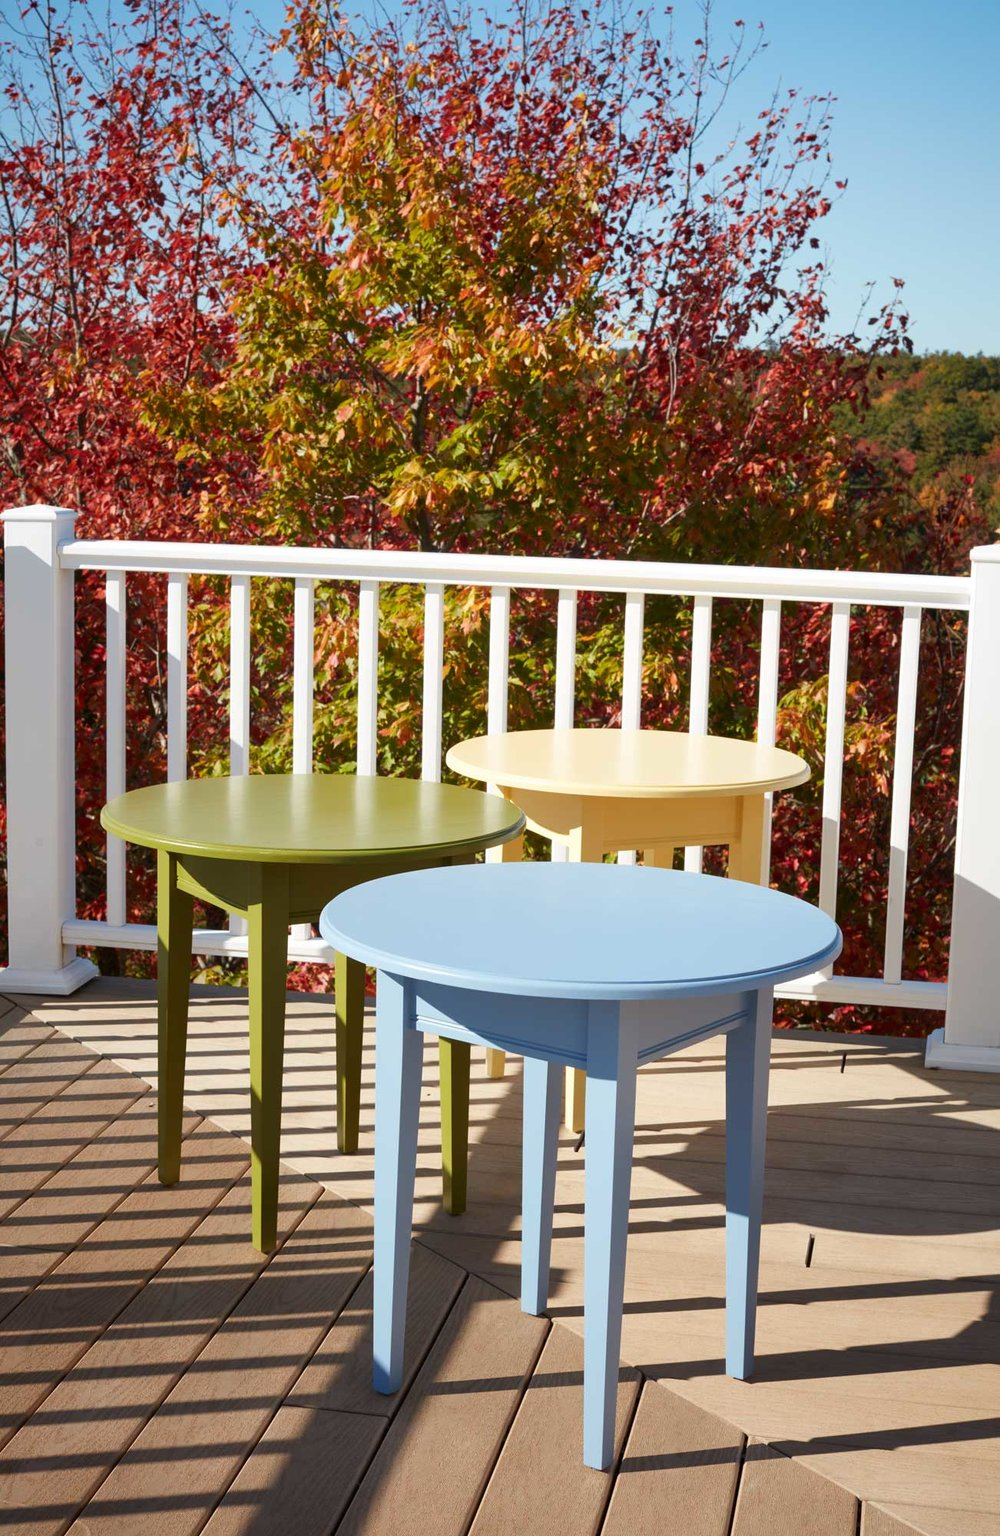 MWW_Phippsburg_2016_Table_SmallRound_6965_Edit_Web.jpg